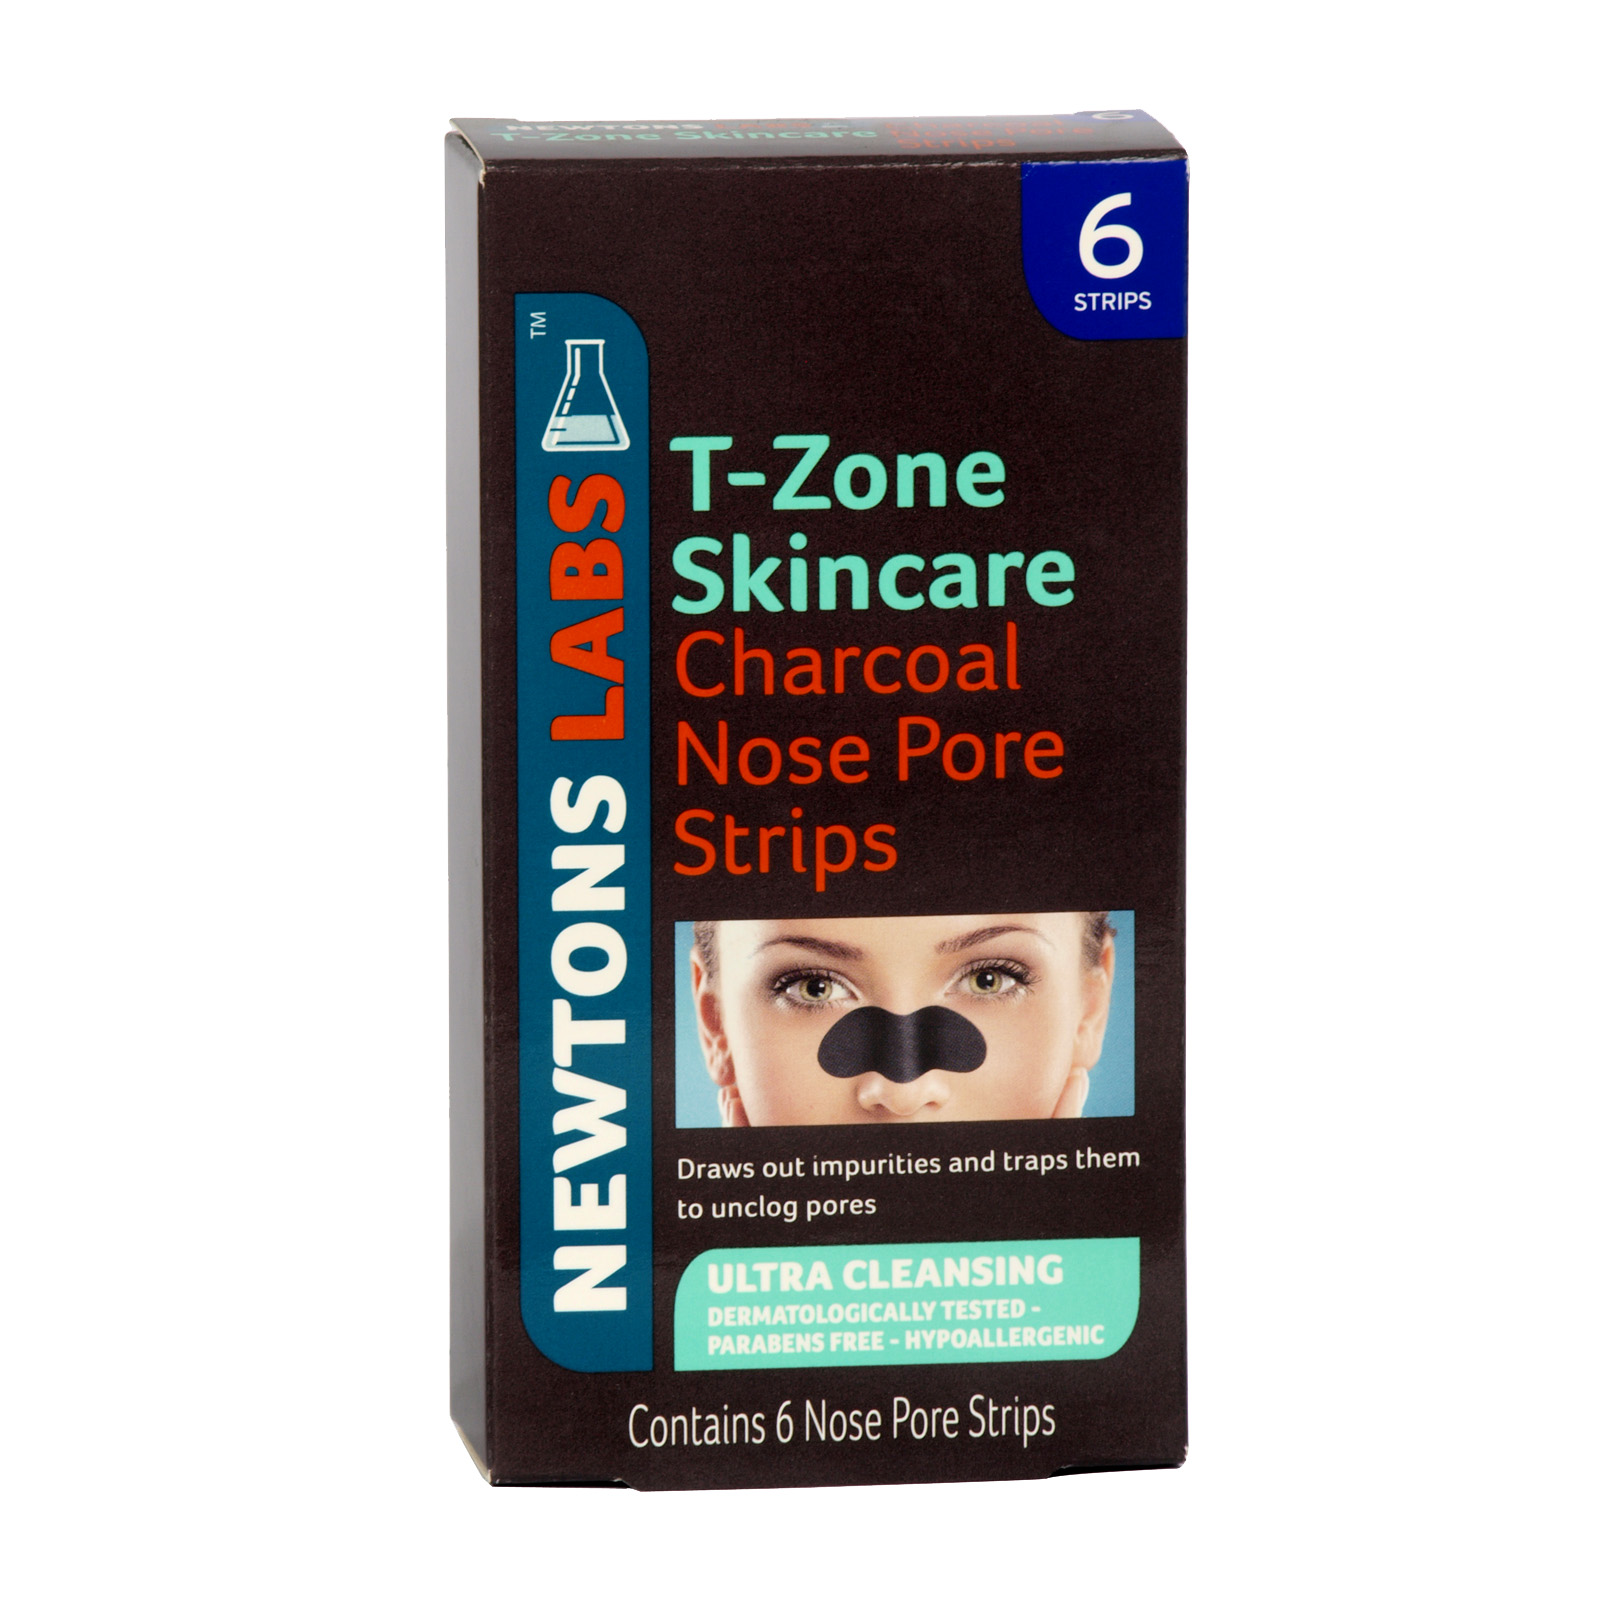 T-ZONE 6 NOSE PORE STRIPS CHARCOAL X6